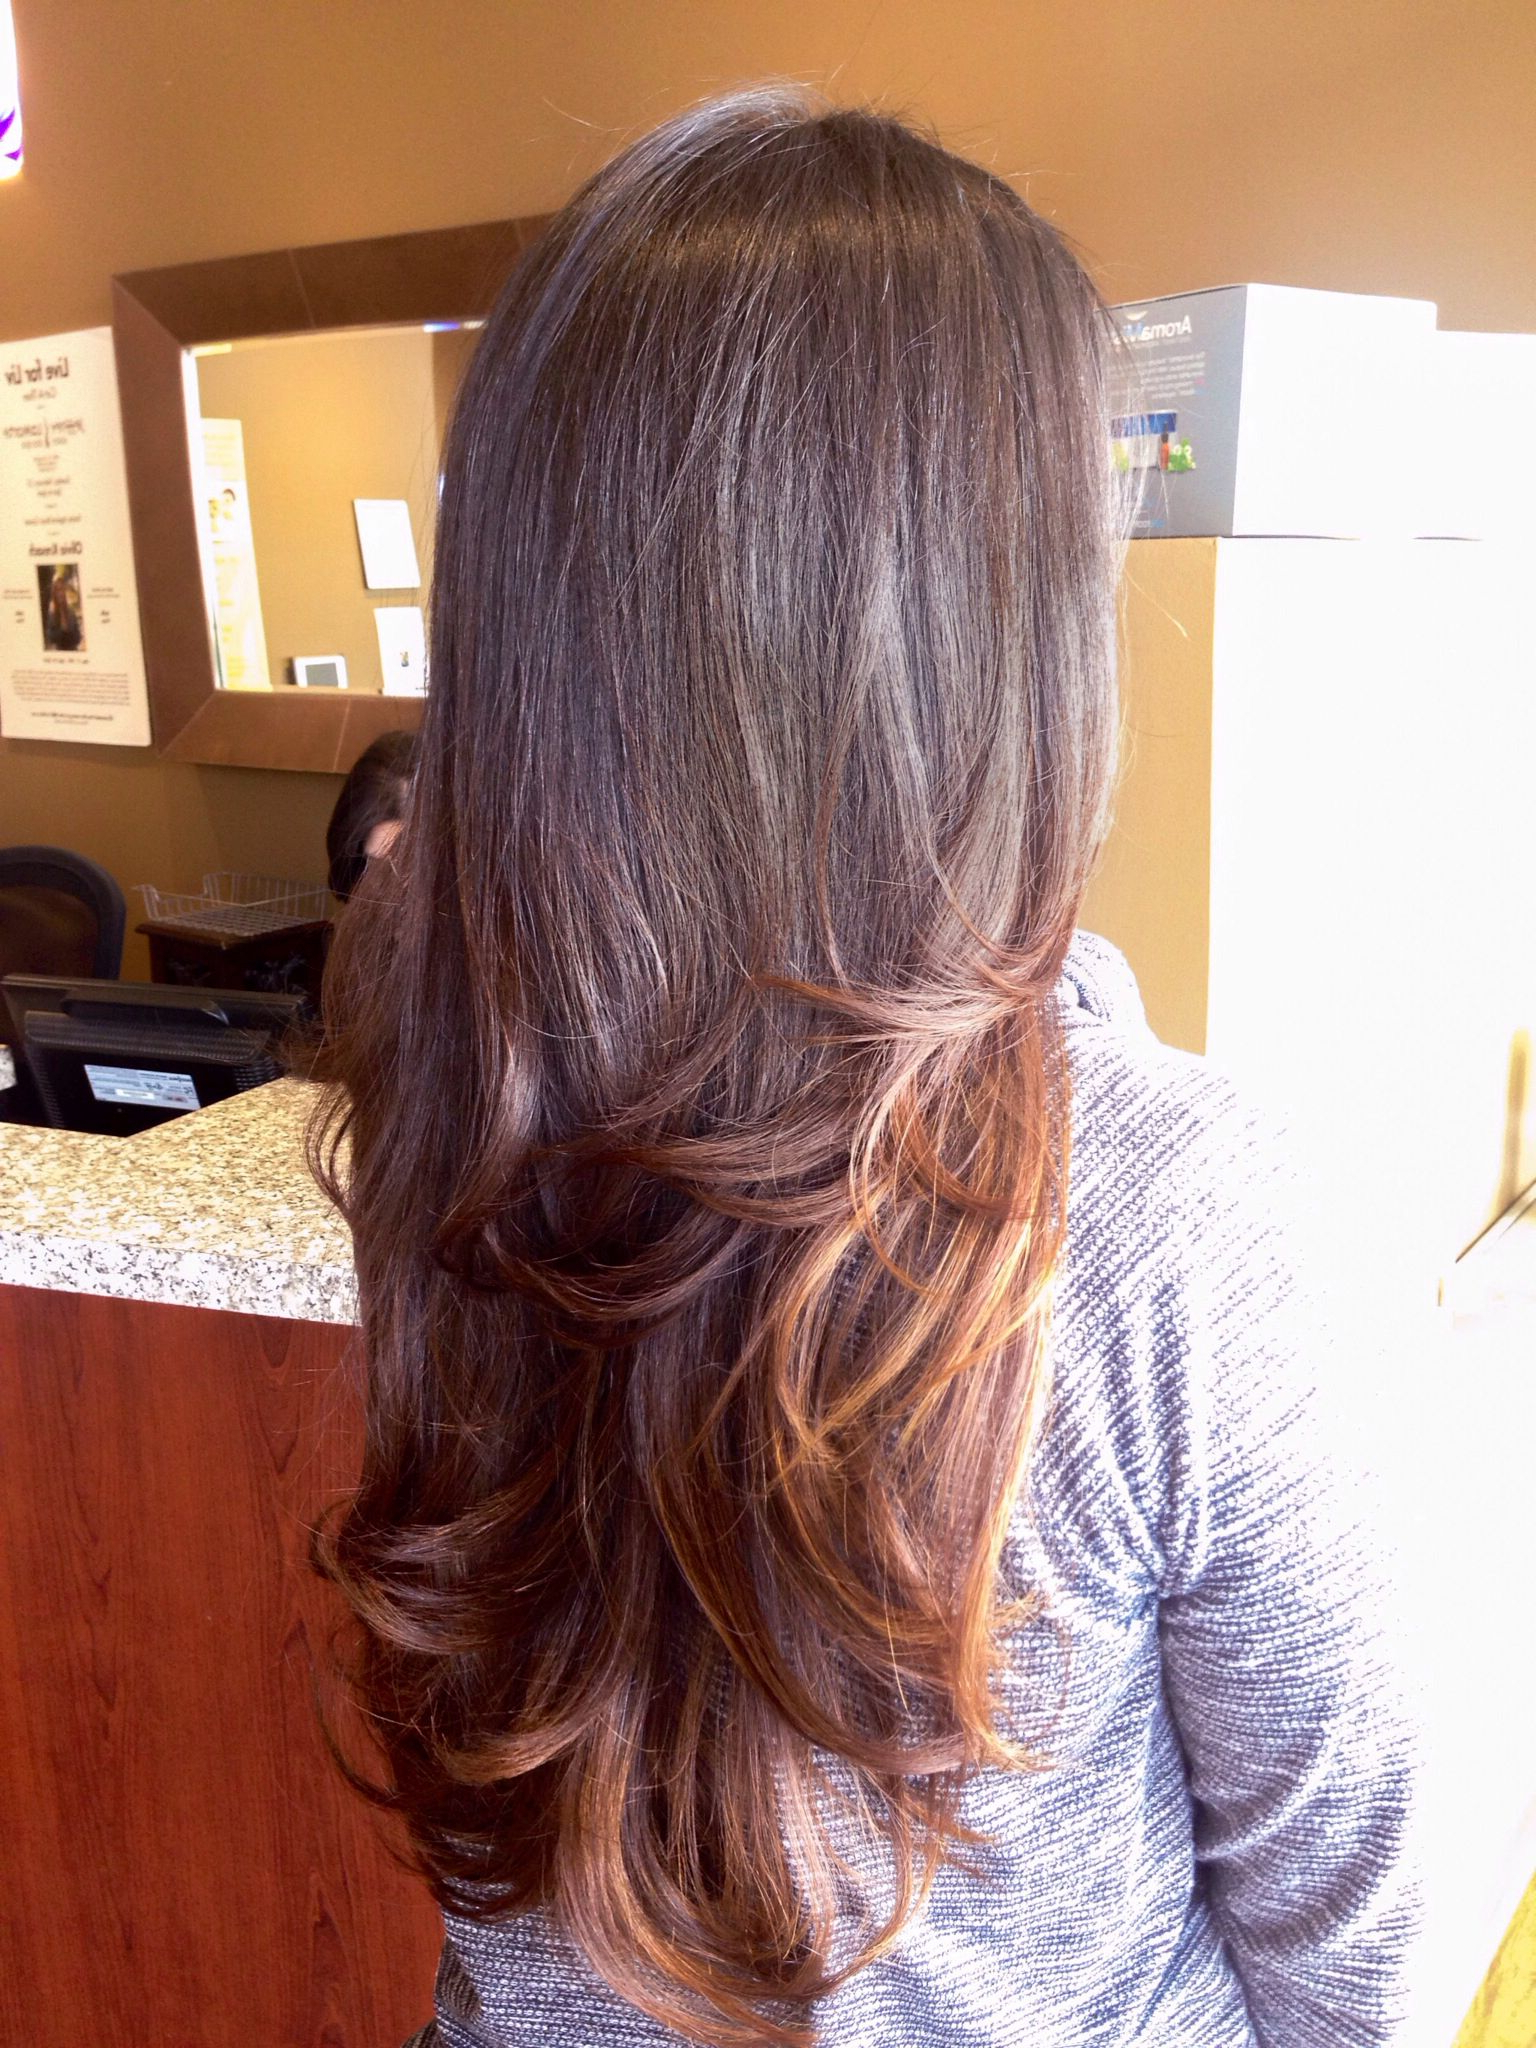 Flippy Bombshell Blowout With Medium Layers On Long Hair With 2017 Flippy Layers Hairstyles (Gallery 6 of 20)